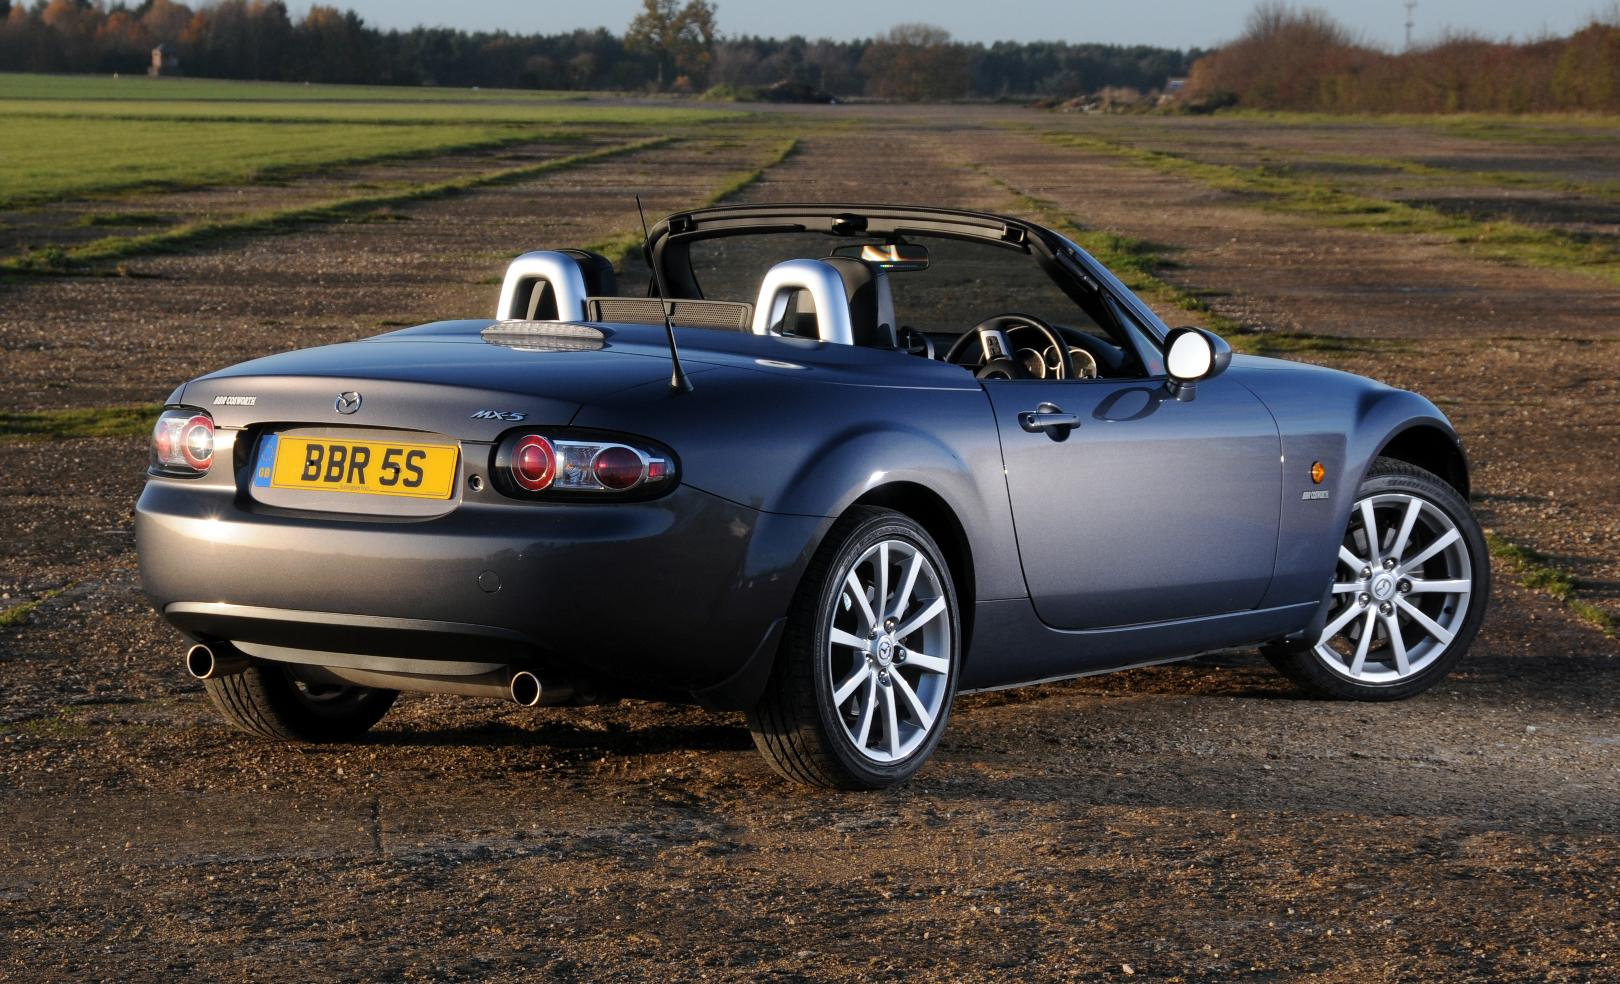 Uk tuning firm unveils 235bhp mx 5 upgrade aol cars uk